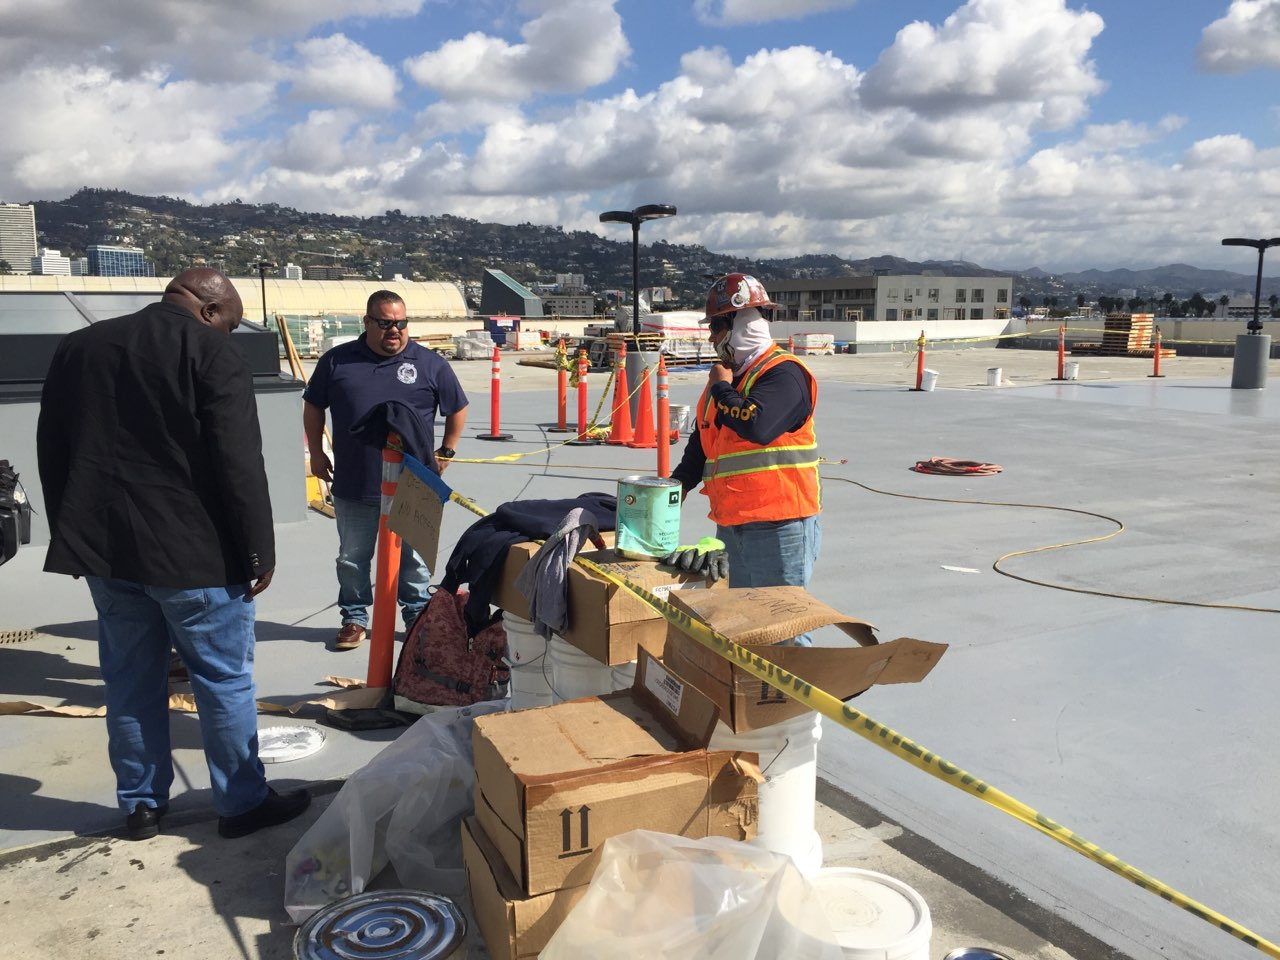 Wftu Usa Inspection Of Workplaces Roofing And Waterproofing By The Wftu President And Members Of Roofers Local 36 In Beverly Hills La